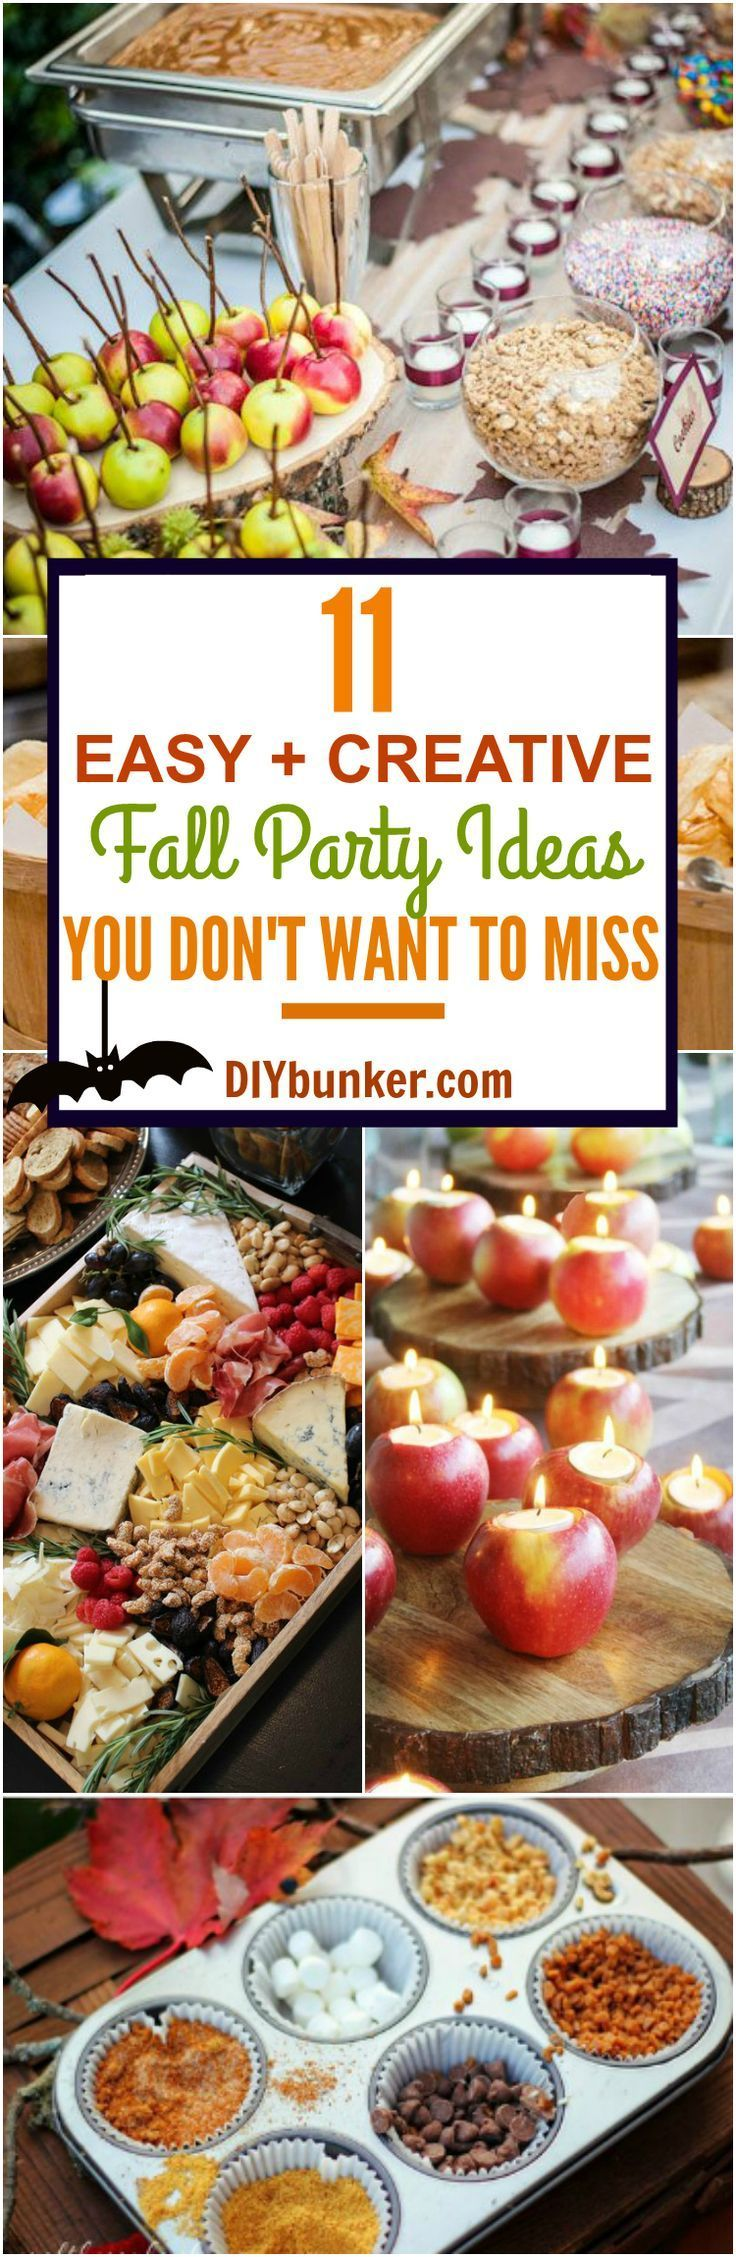 These 11 Fall Party Ideas Are GENIUS! They are great for any Autumn party such as Halloween, Thanksgiving, etc. Heads up: My favorites are the candy apple and hot chocolate bars! (Halloween Pumpkins Chocolate Chips)